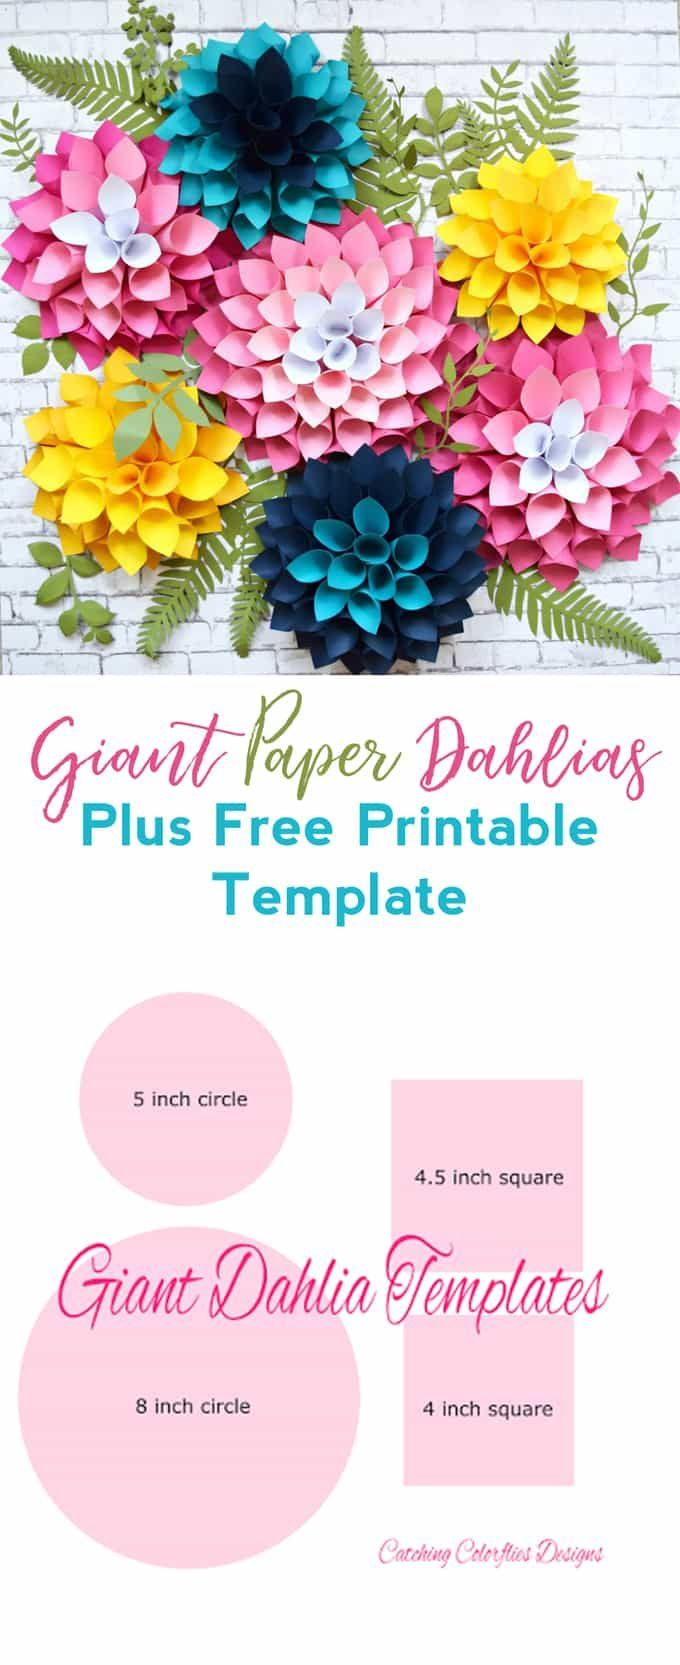 Step by Step Easy Giant Paper Dahlia Tutorial  Paper flowers craft